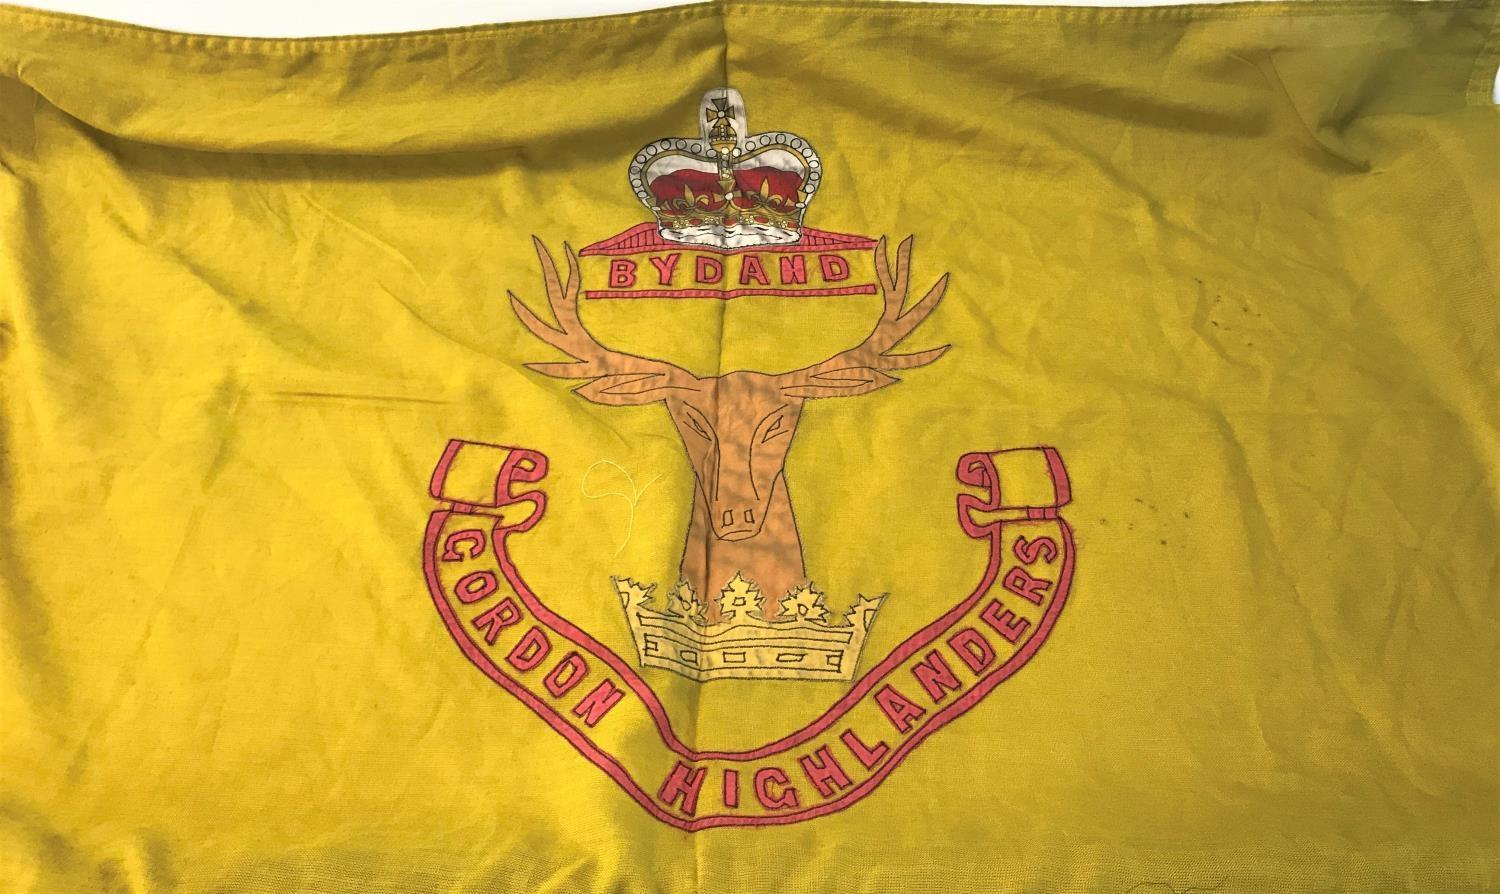 Lot 285 - VINTAGE LINEN GORDON HIGHLANDERS FLAG the yellow flag with regimental badge, 75cm x 125cm